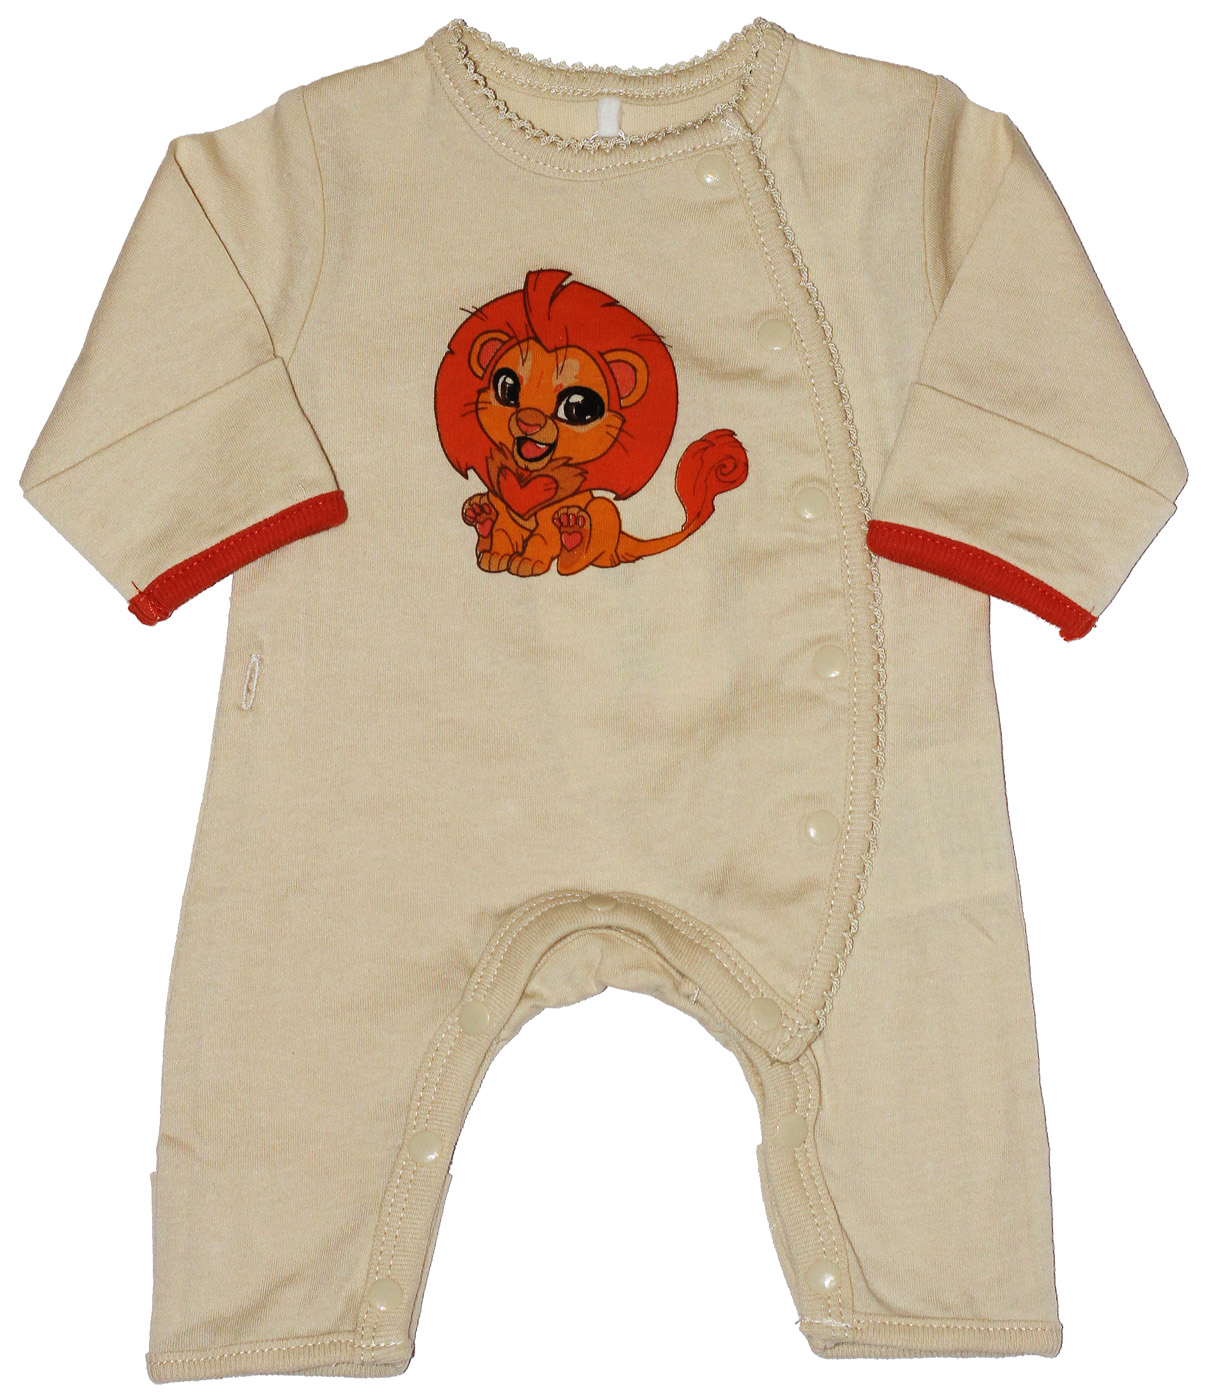 You searched for: preemie clothes! Etsy is the home to thousands of handmade, vintage, and one-of-a-kind products and gifts related to your search. No matter what you're looking for or where you are in the world, our global marketplace of sellers can help you find unique and affordable options. Let's get started!